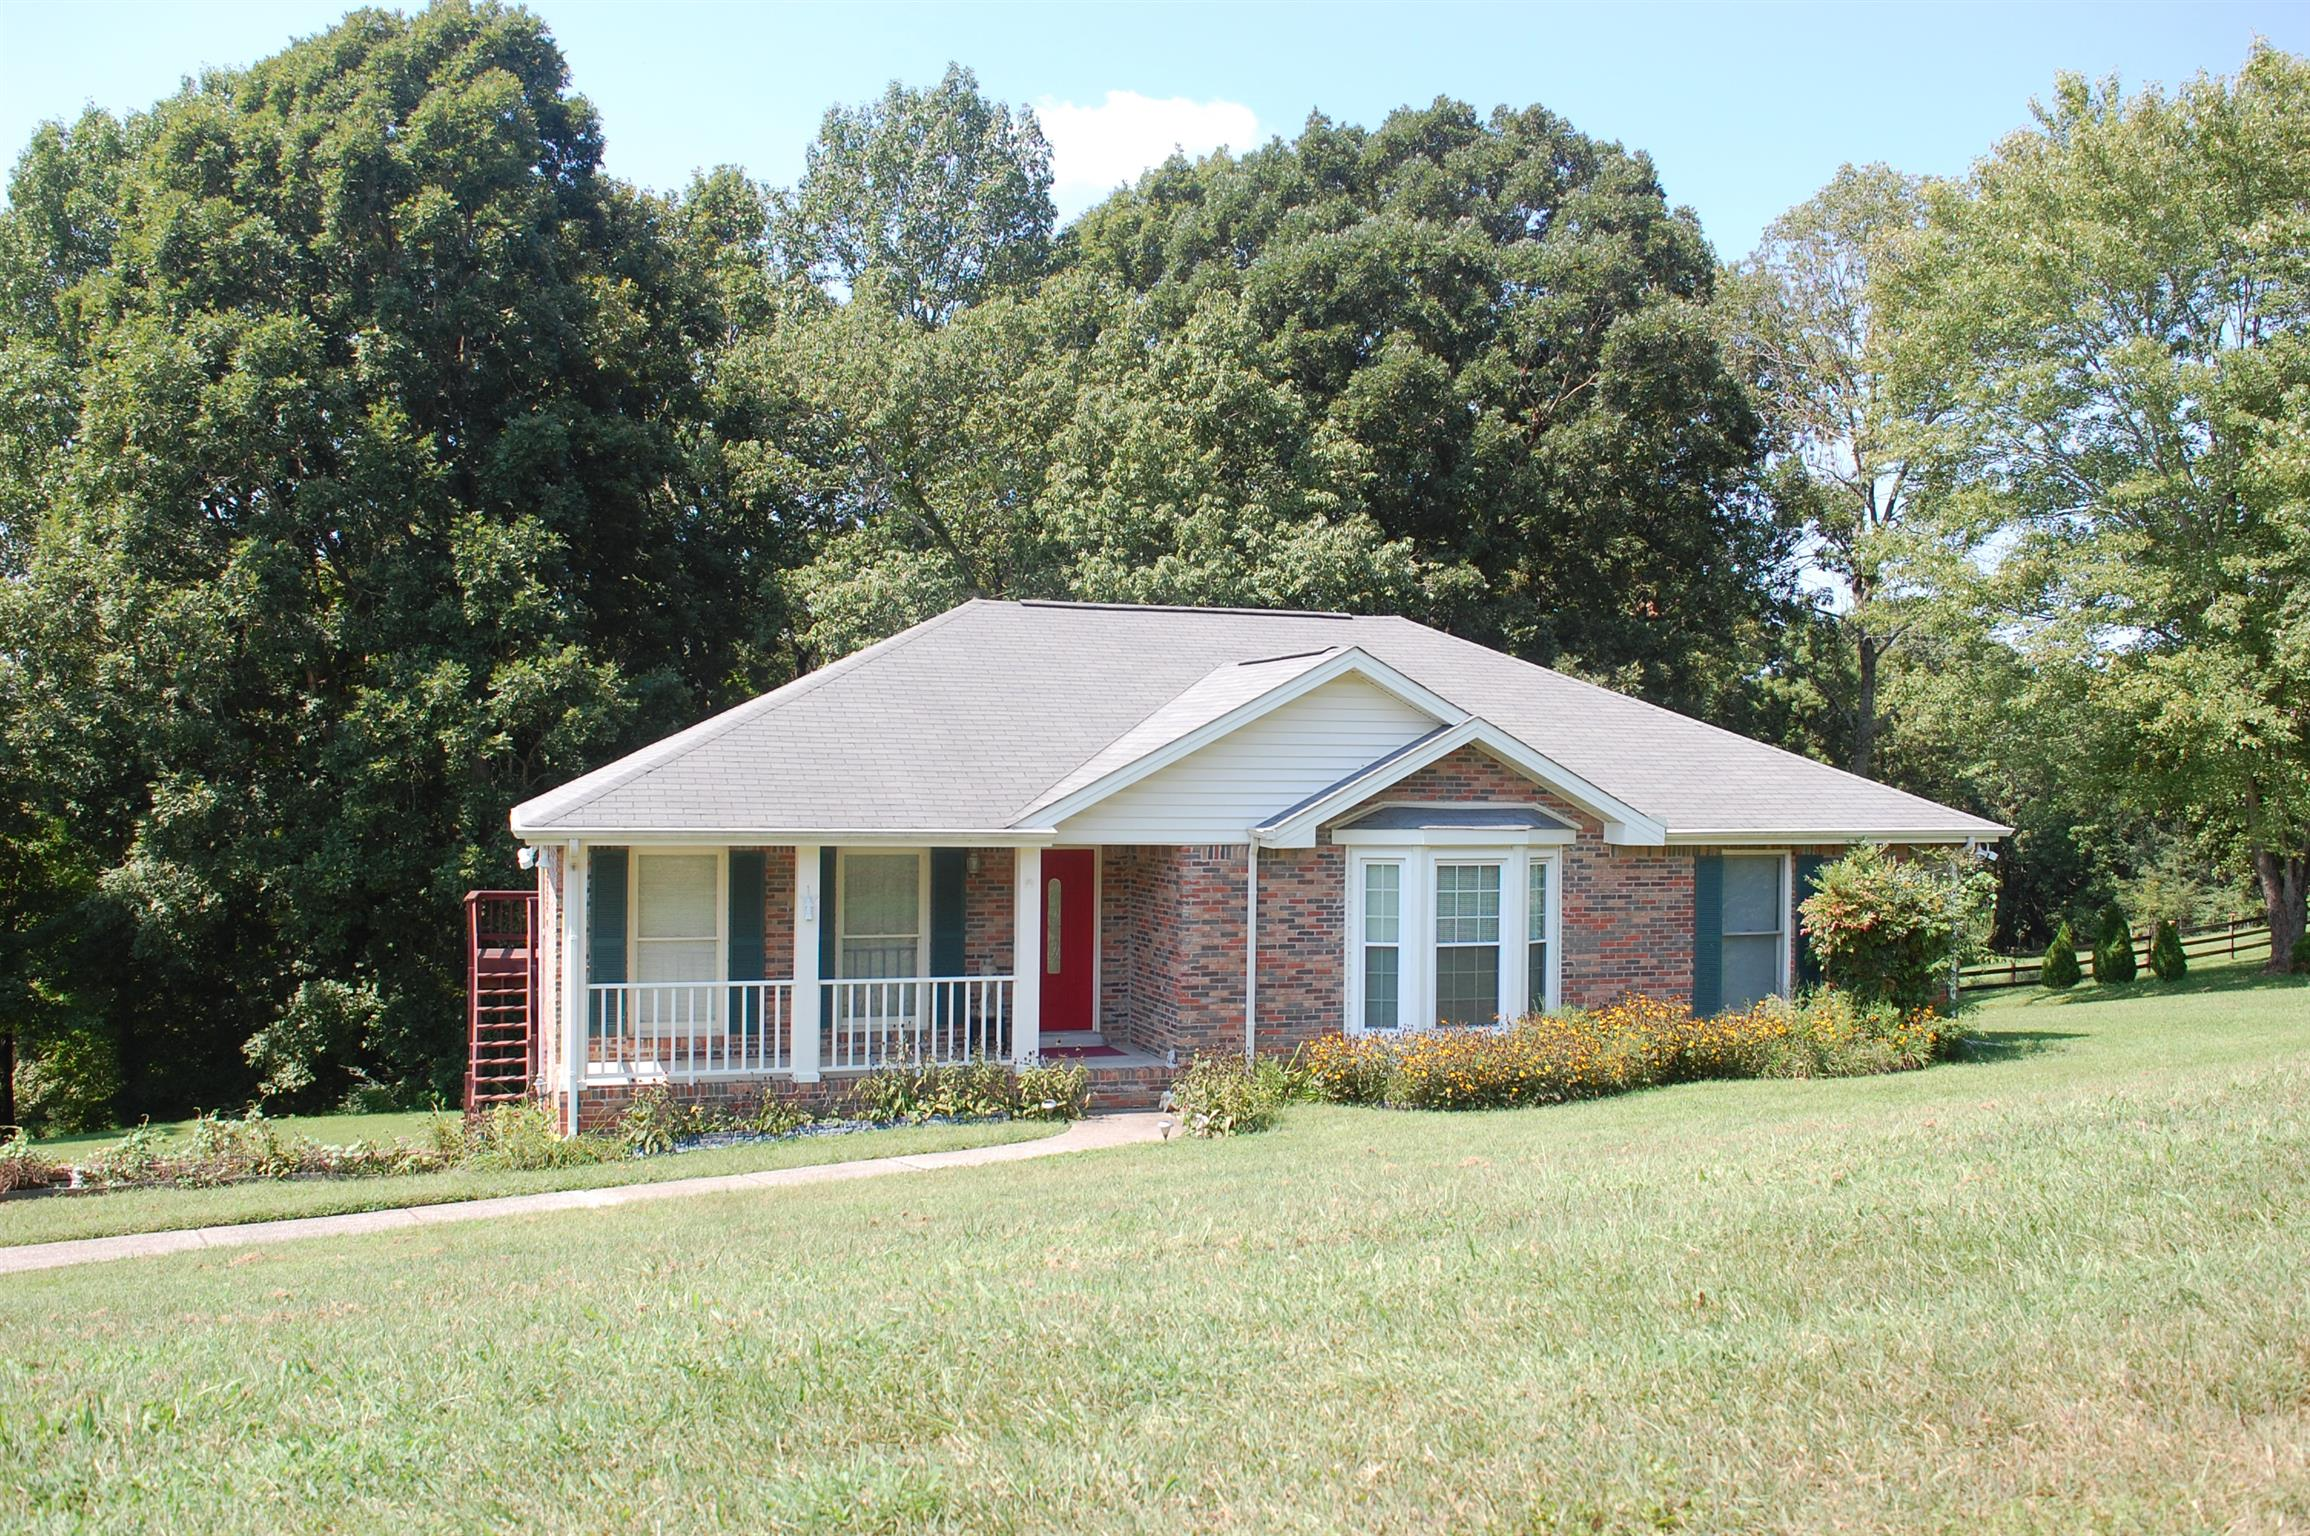 869 Hartman Ct, Adams, TN 37010 - Adams, TN real estate listing